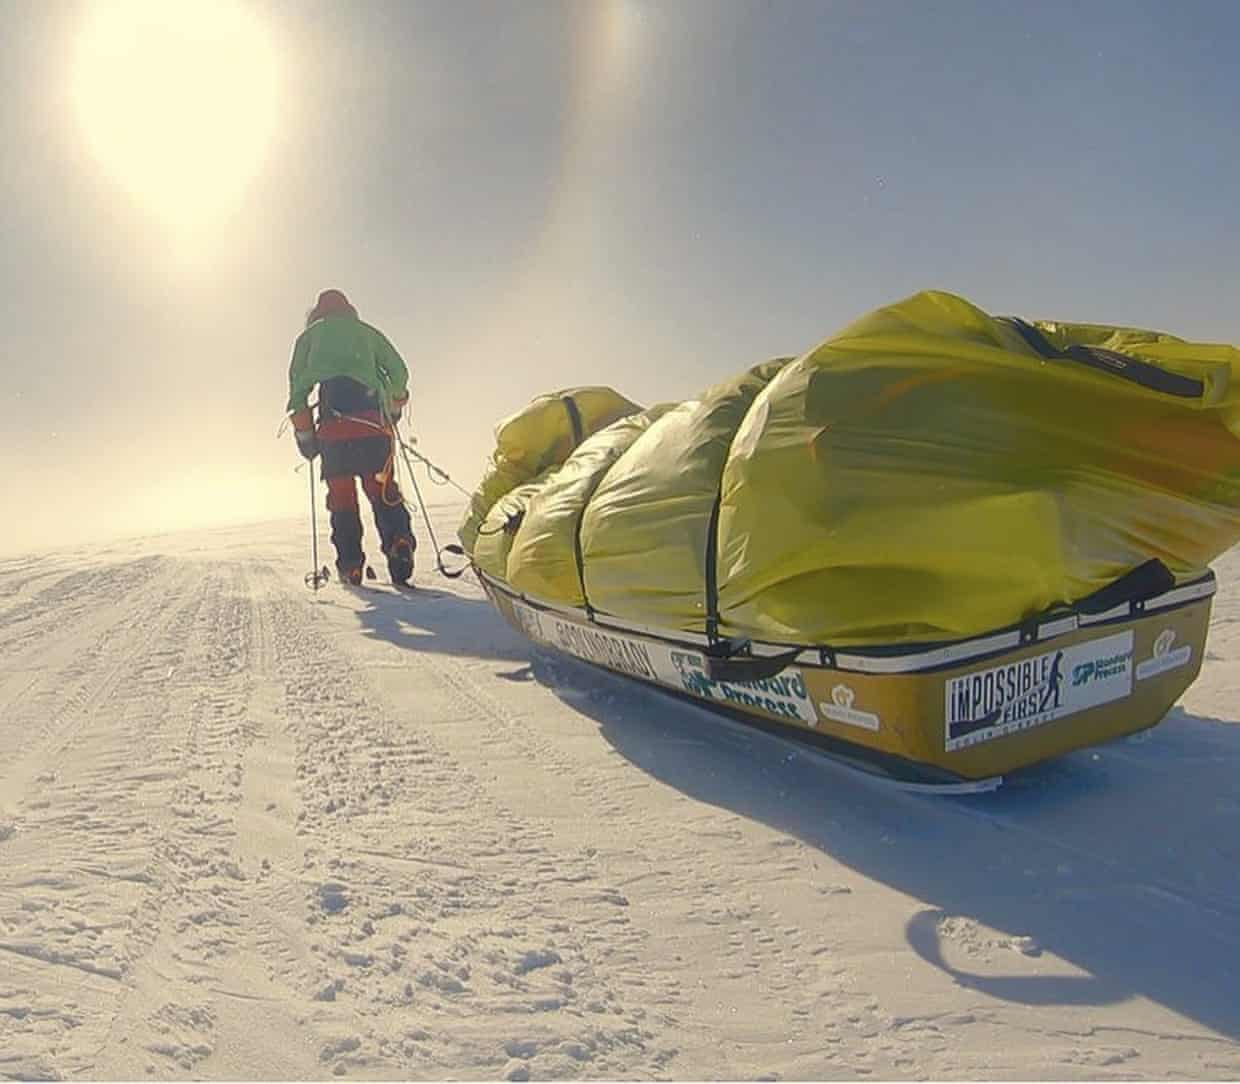 https://www.theguardian.com/world/2018/dec/27/us-explorer-colin-obrady-completes-first-unaided-solo-traverse-of-antarctica